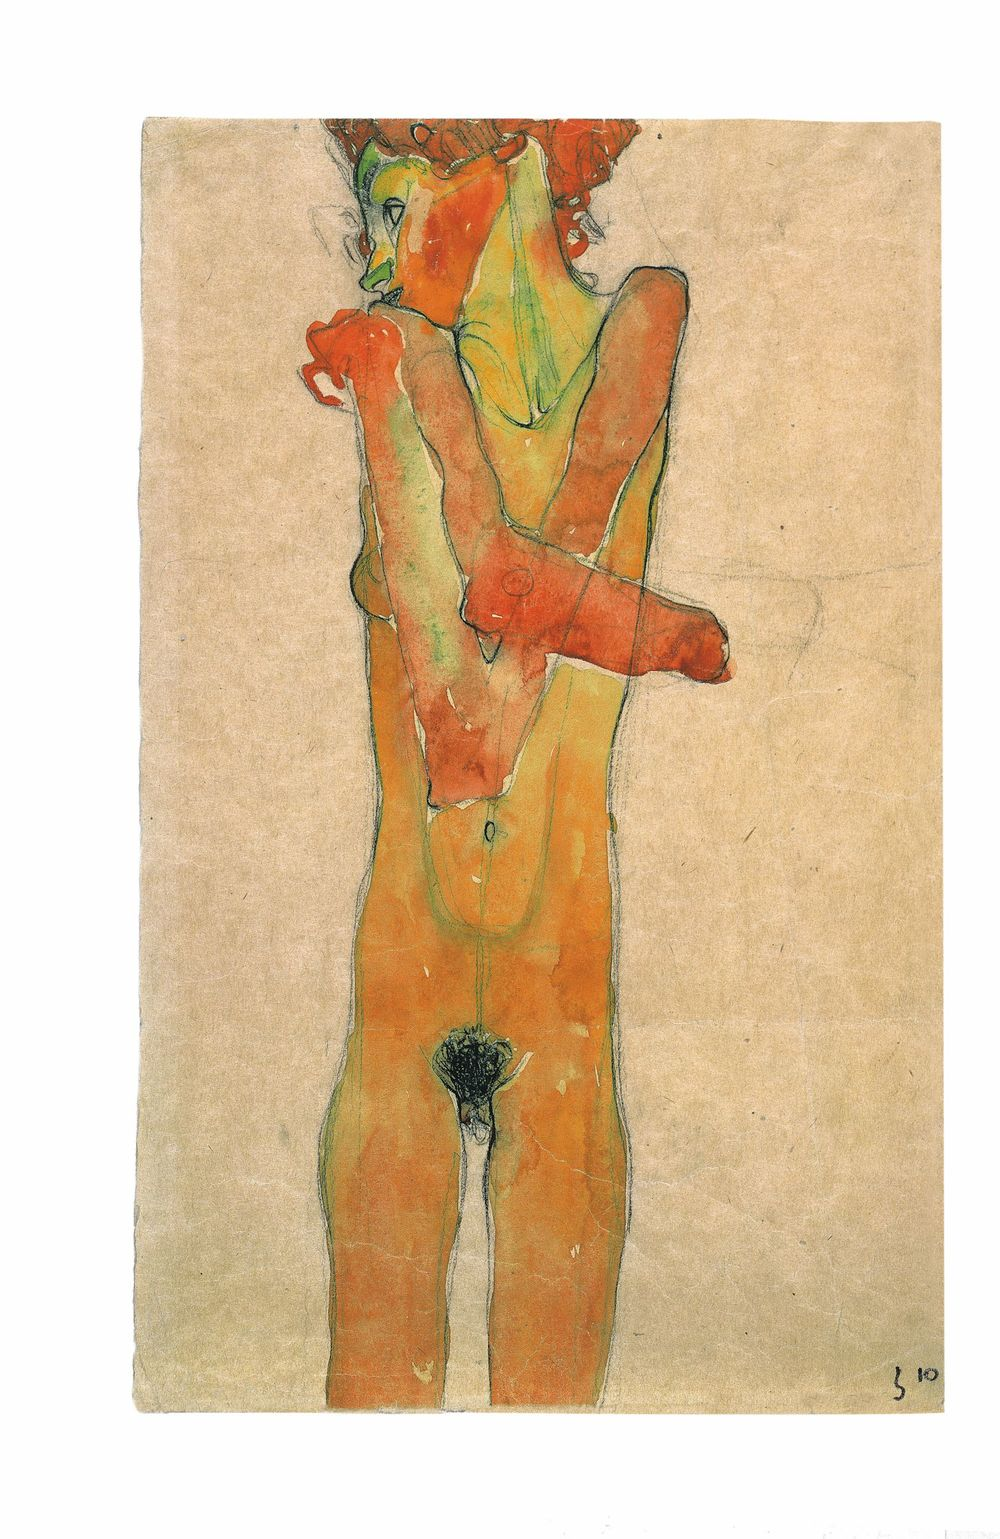 5. Nude Girl with Crossed Arms (Gerti Schiele)